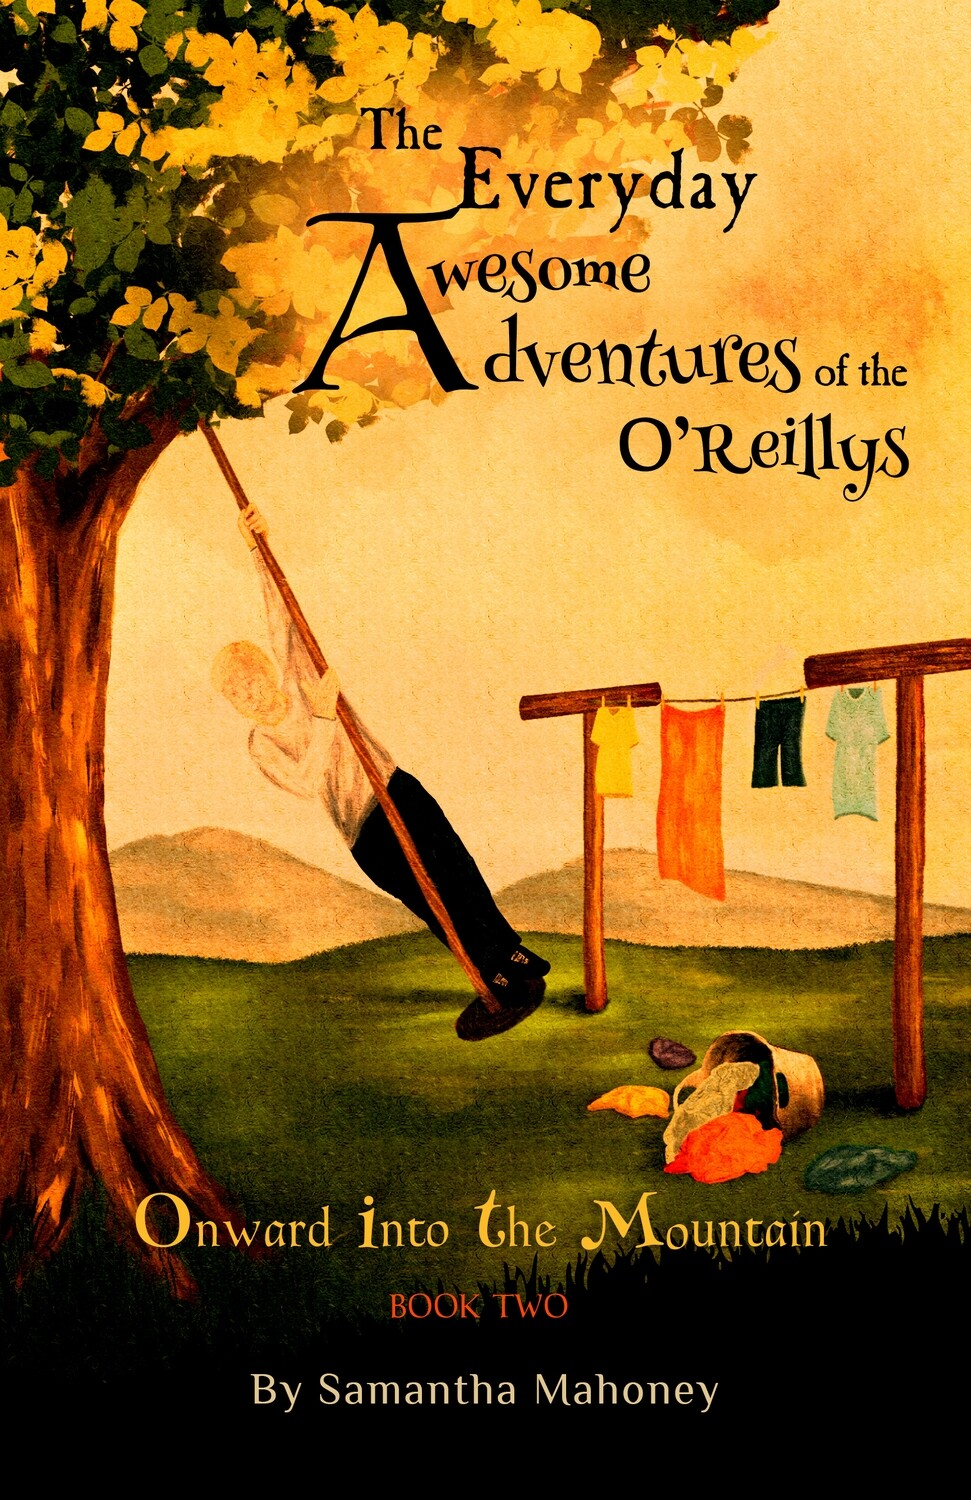 The Everyday Awesome Adventures of the O'Reillys (Book Two)